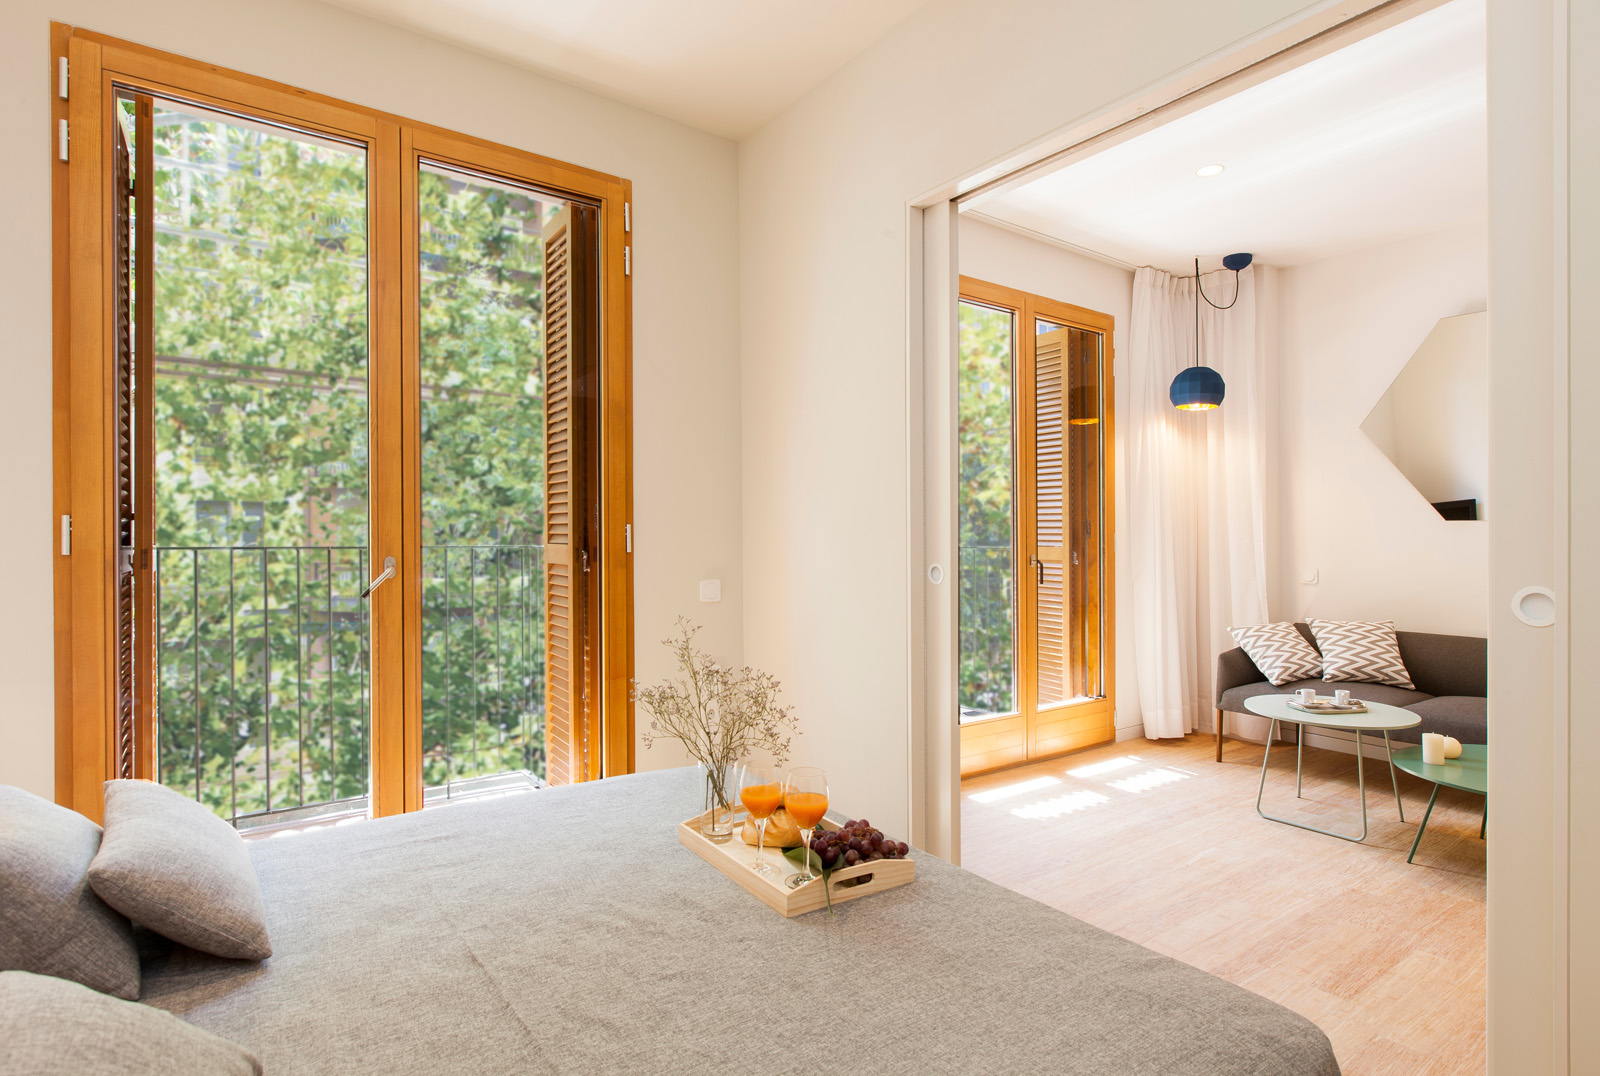 Bedroom and living space - Garden Apartments